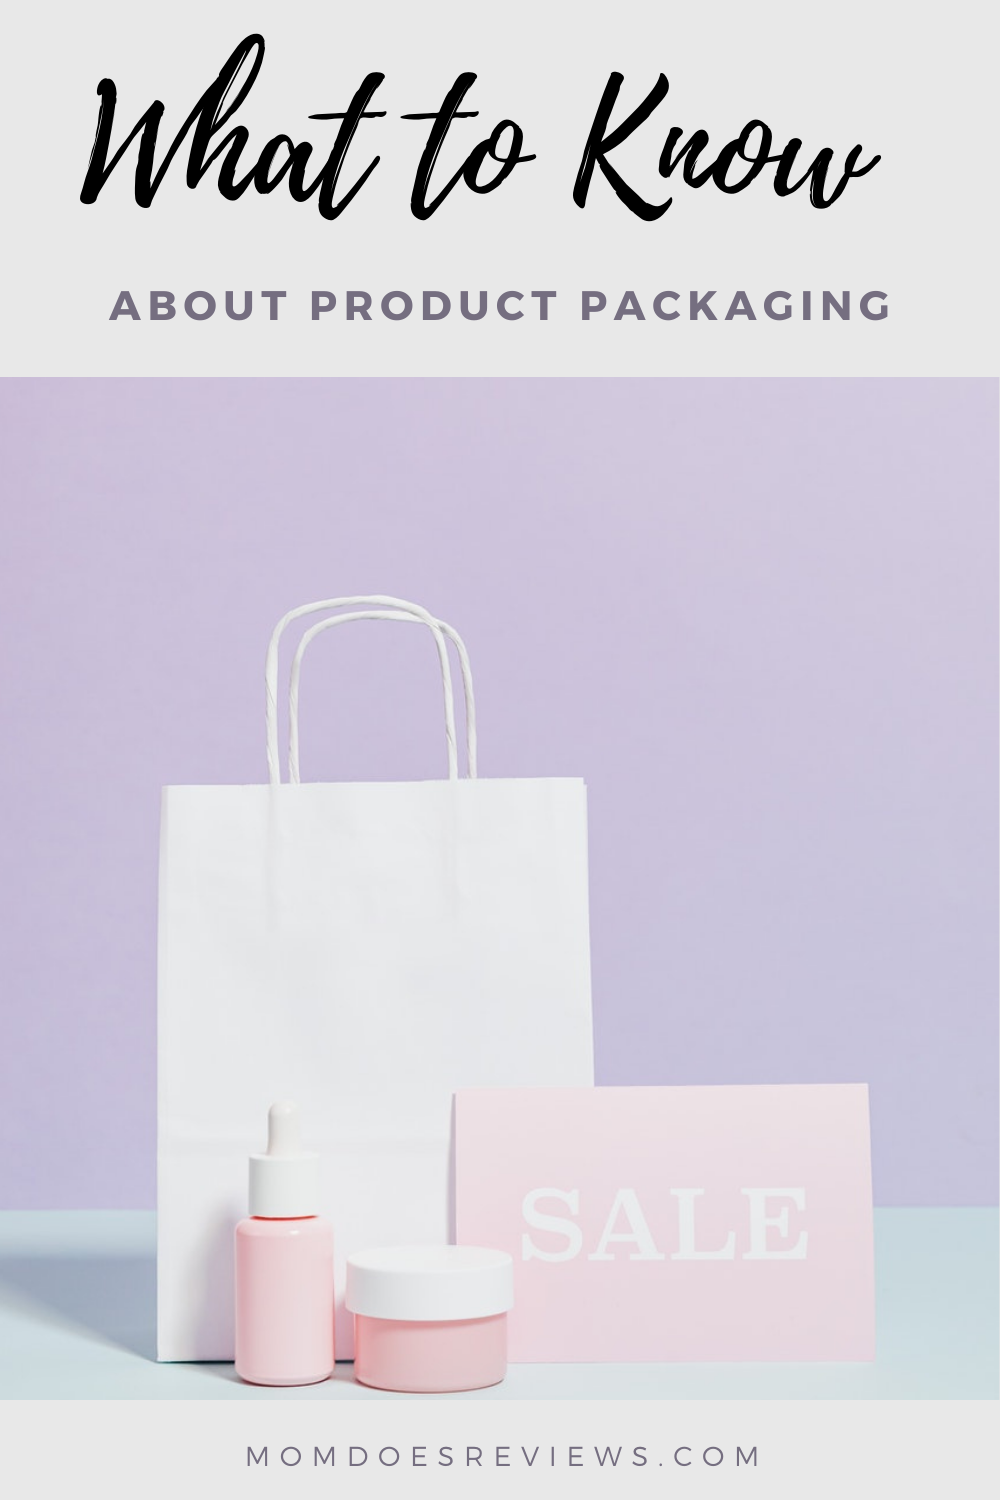 Is Your Home Business Taking Advantage Of The Marketing Benefits Of Packaging?